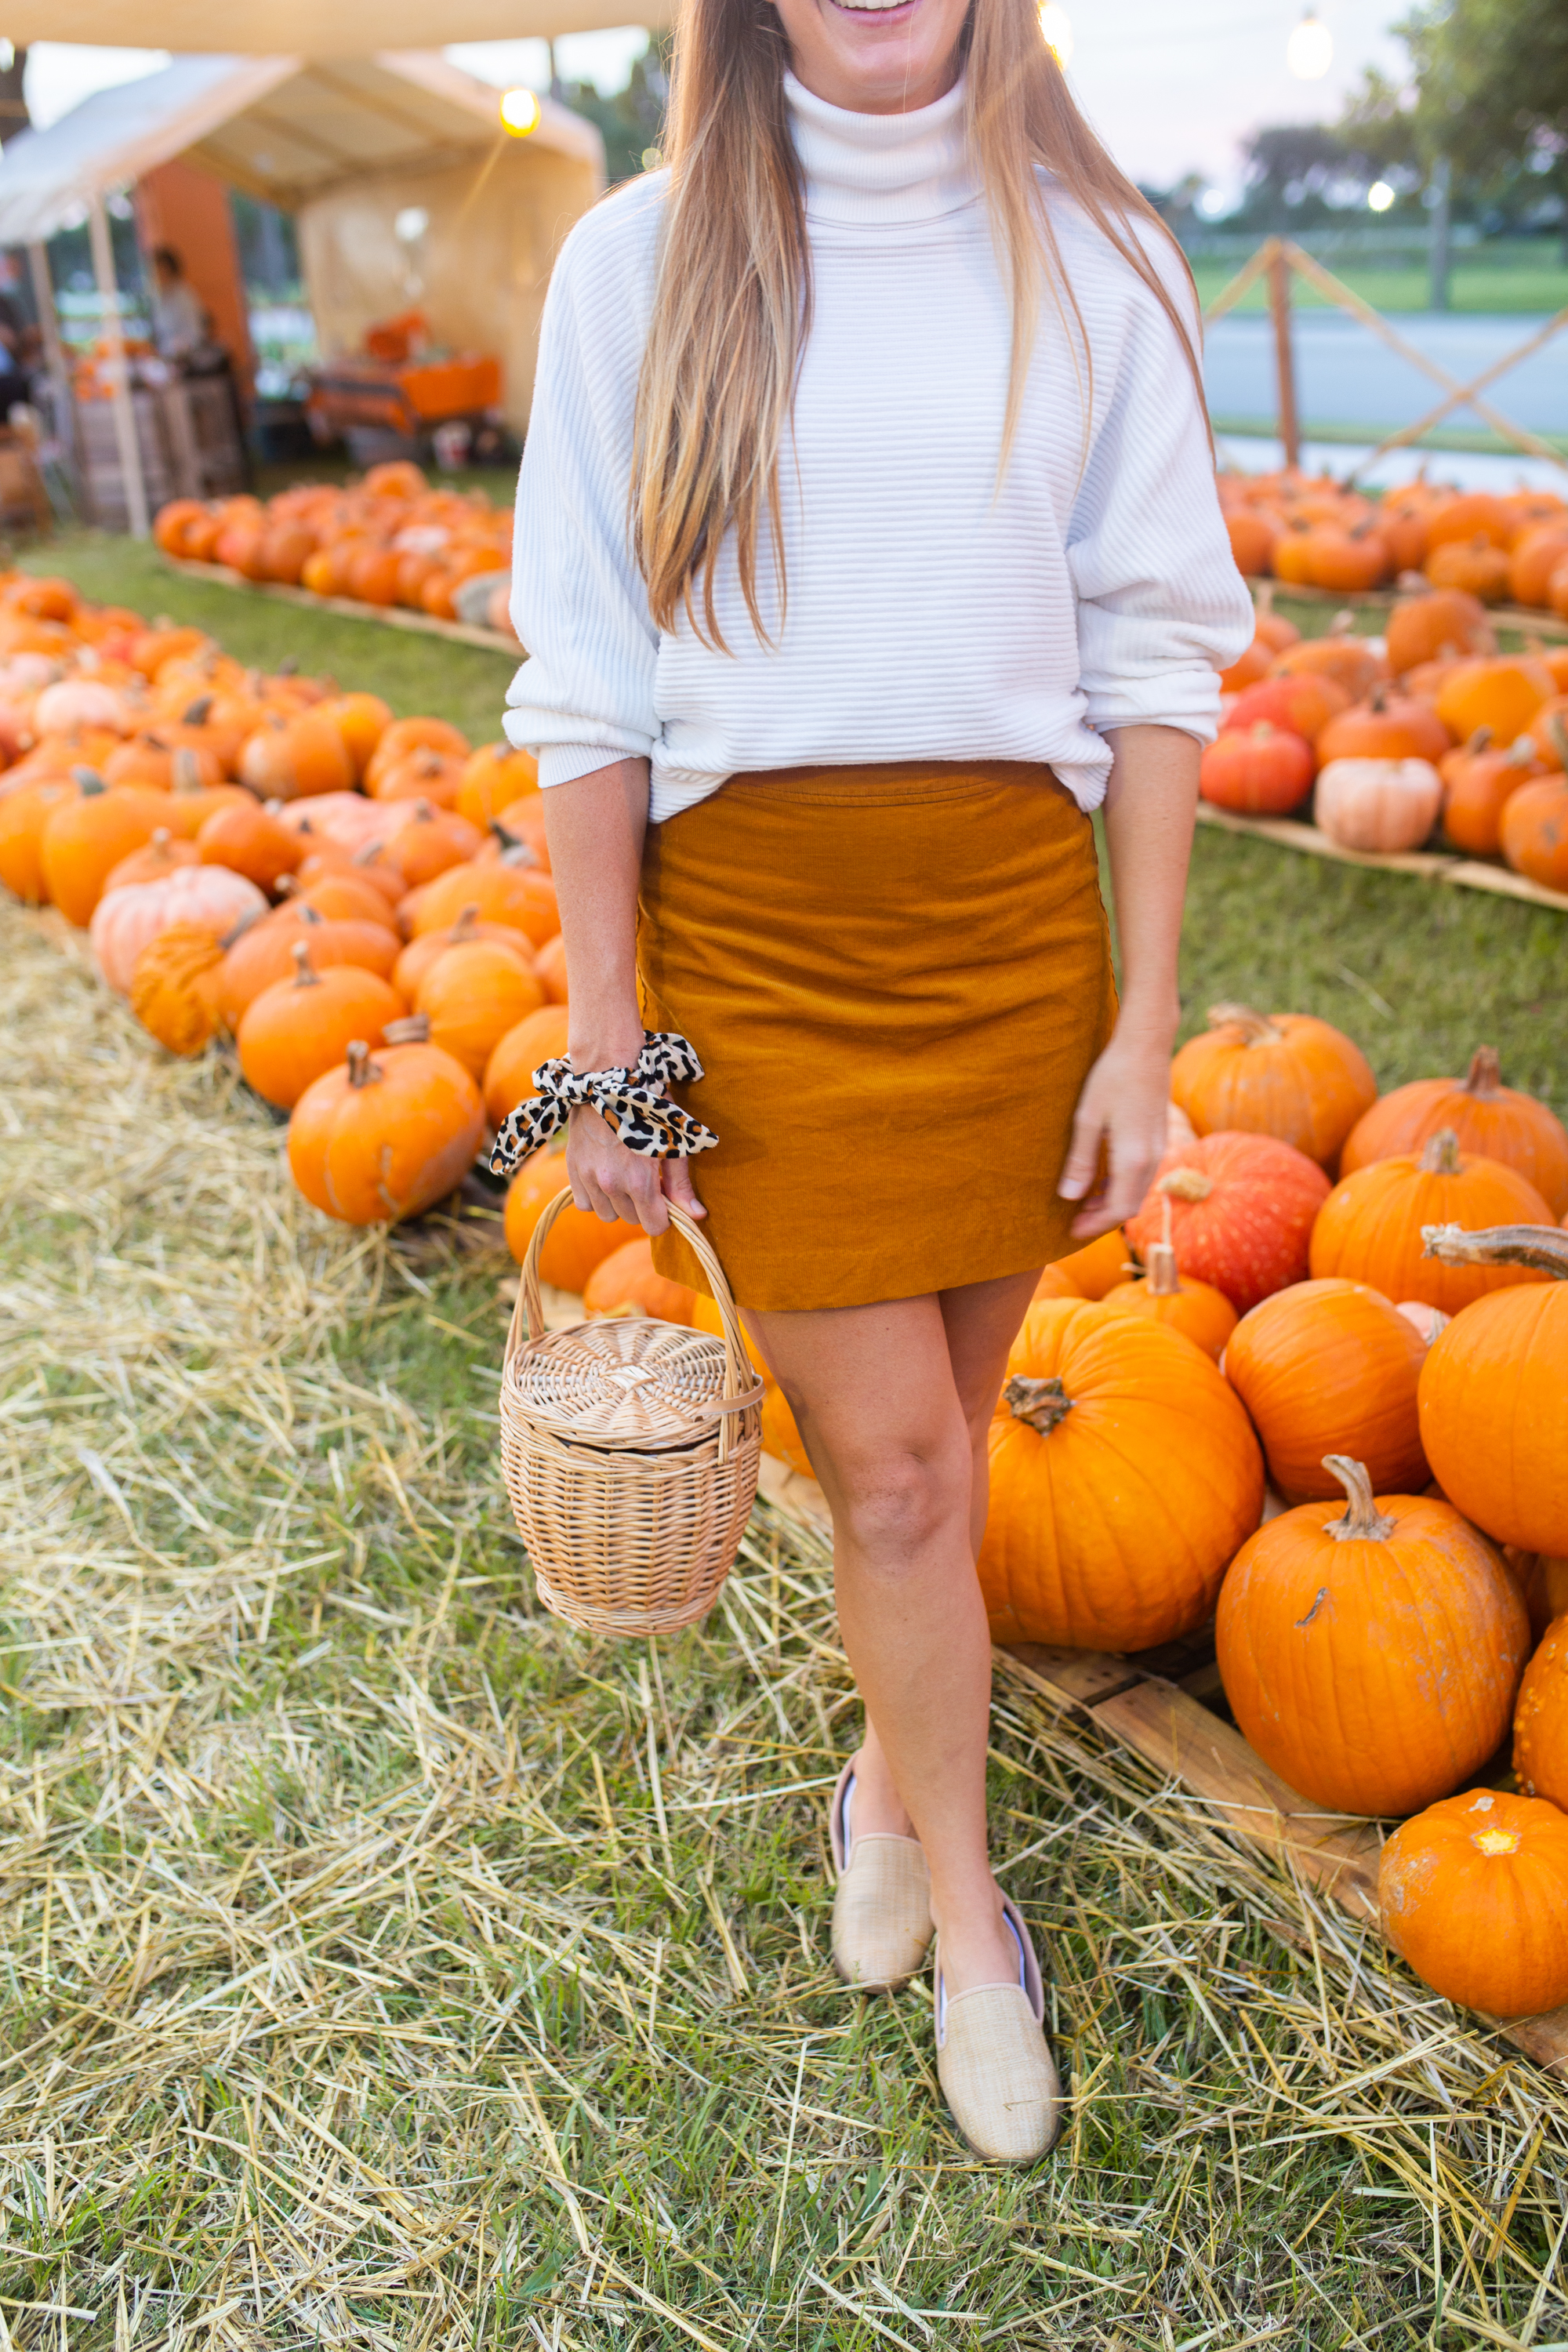 5 Simple Thanksgiving Day Outfit Ideas / Thanksgiving Day Outfits / Thanksgiving Day Outfits Dressy / Thanksgiving Day Outfits Casual / What to Wear on Thanksgiving / Fall Outfits / Fall Winter Outfits - Sunshine Style, A Florida Based Fashion and Lifestyle Blog